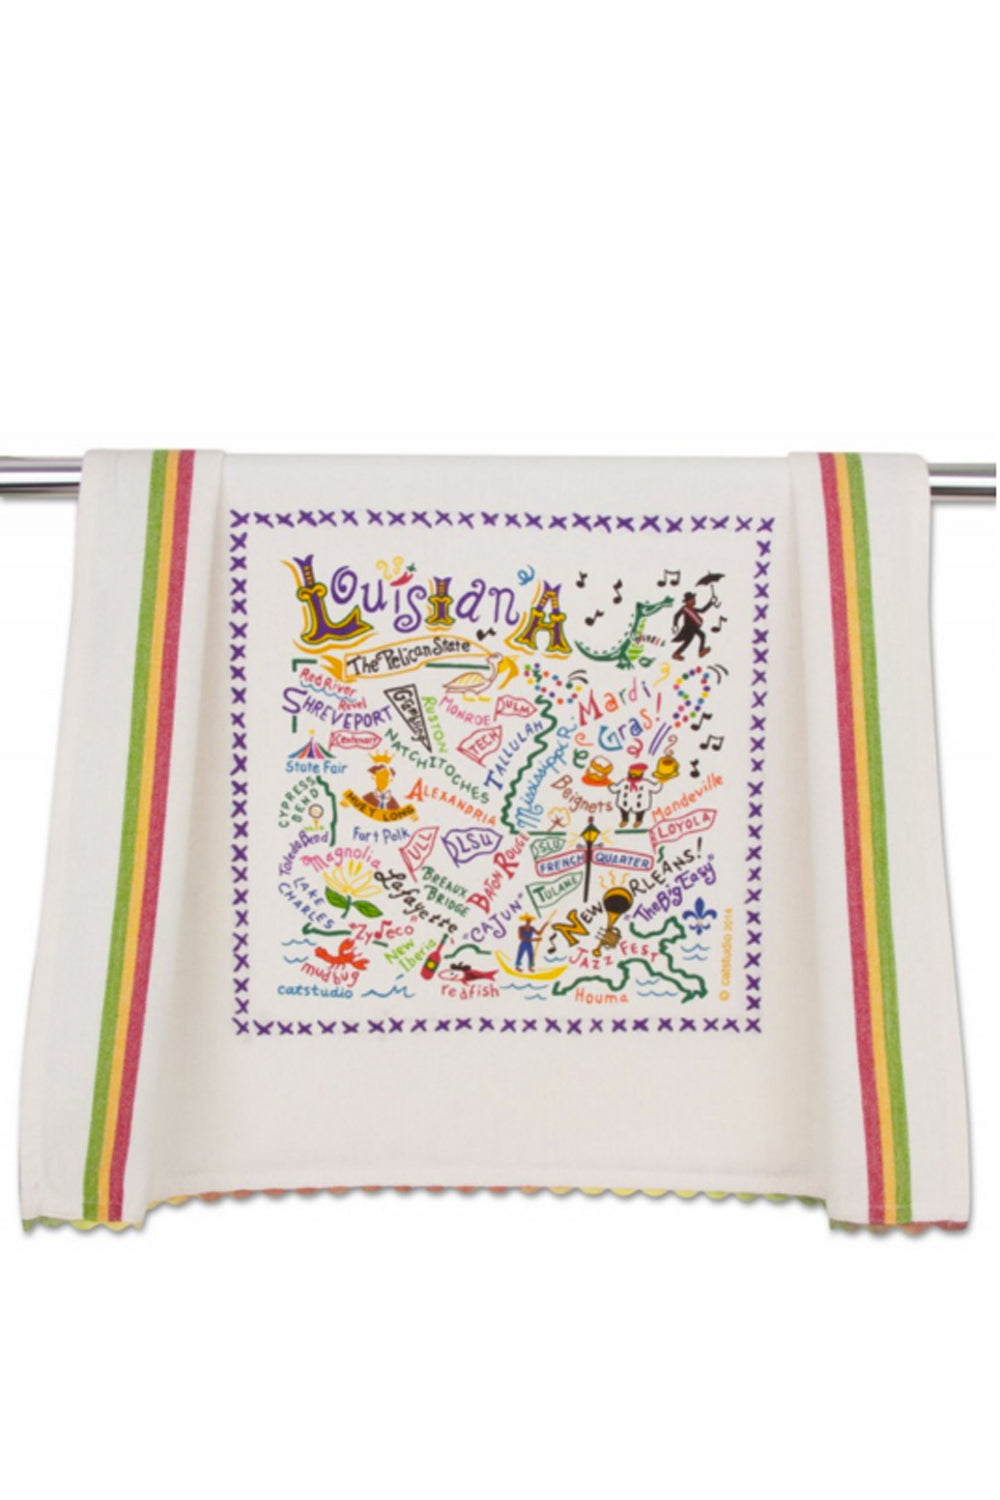 Embroidered Dish Towel - Louisiana